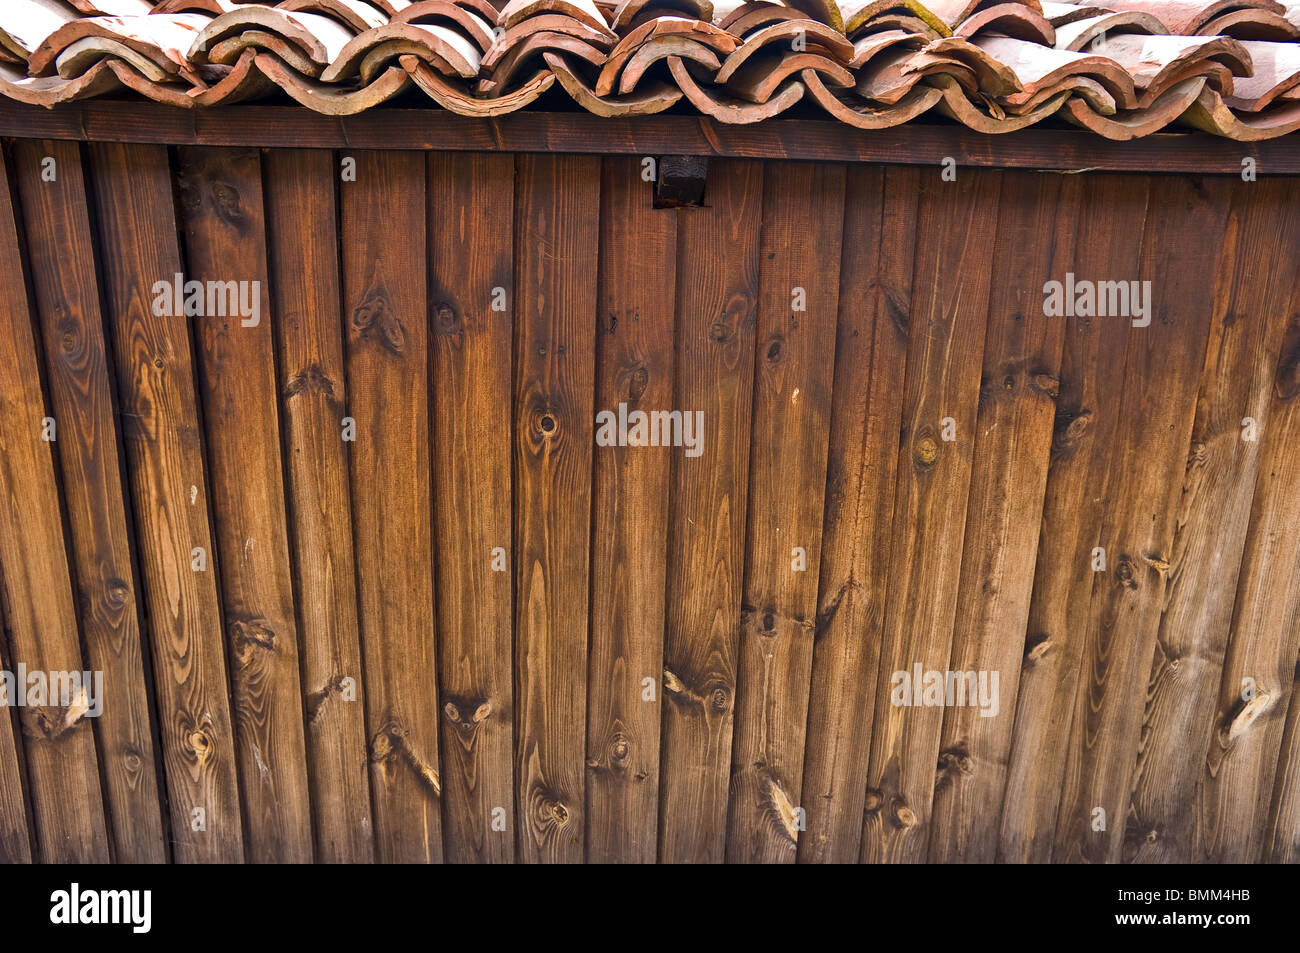 Wooden wall covered with tiles. - Stock Image